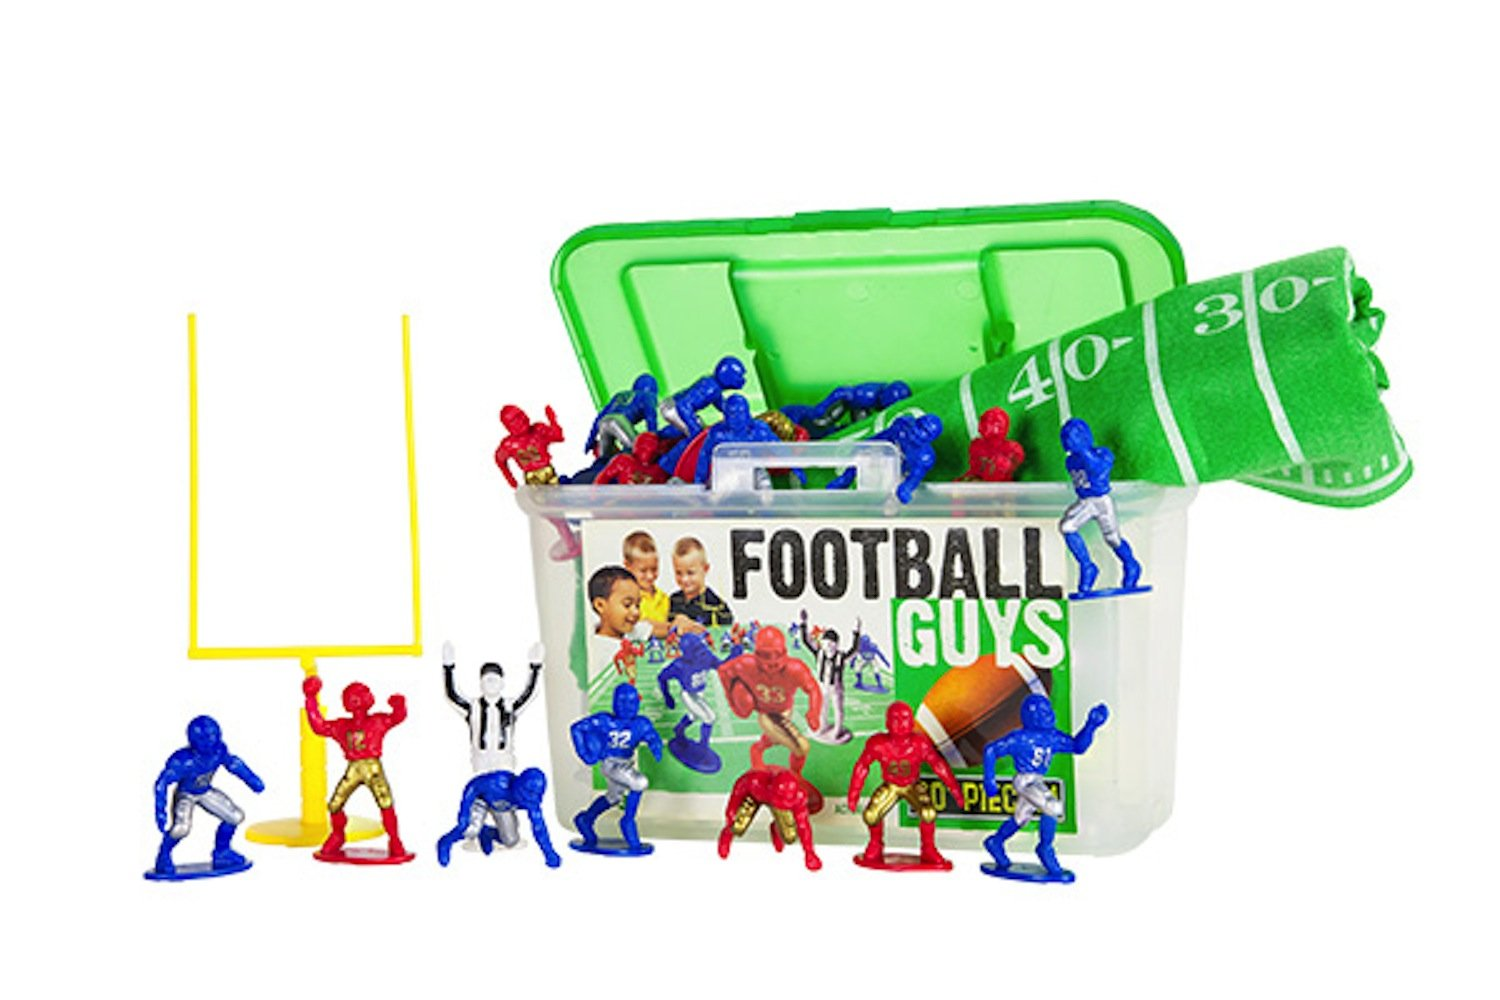 Kaskey Kids Football Guys: Red vs. Blue  Inspires Imagination with Open-Ended Play  Includes 2 Full Teams and More  For Ages 3 and Up